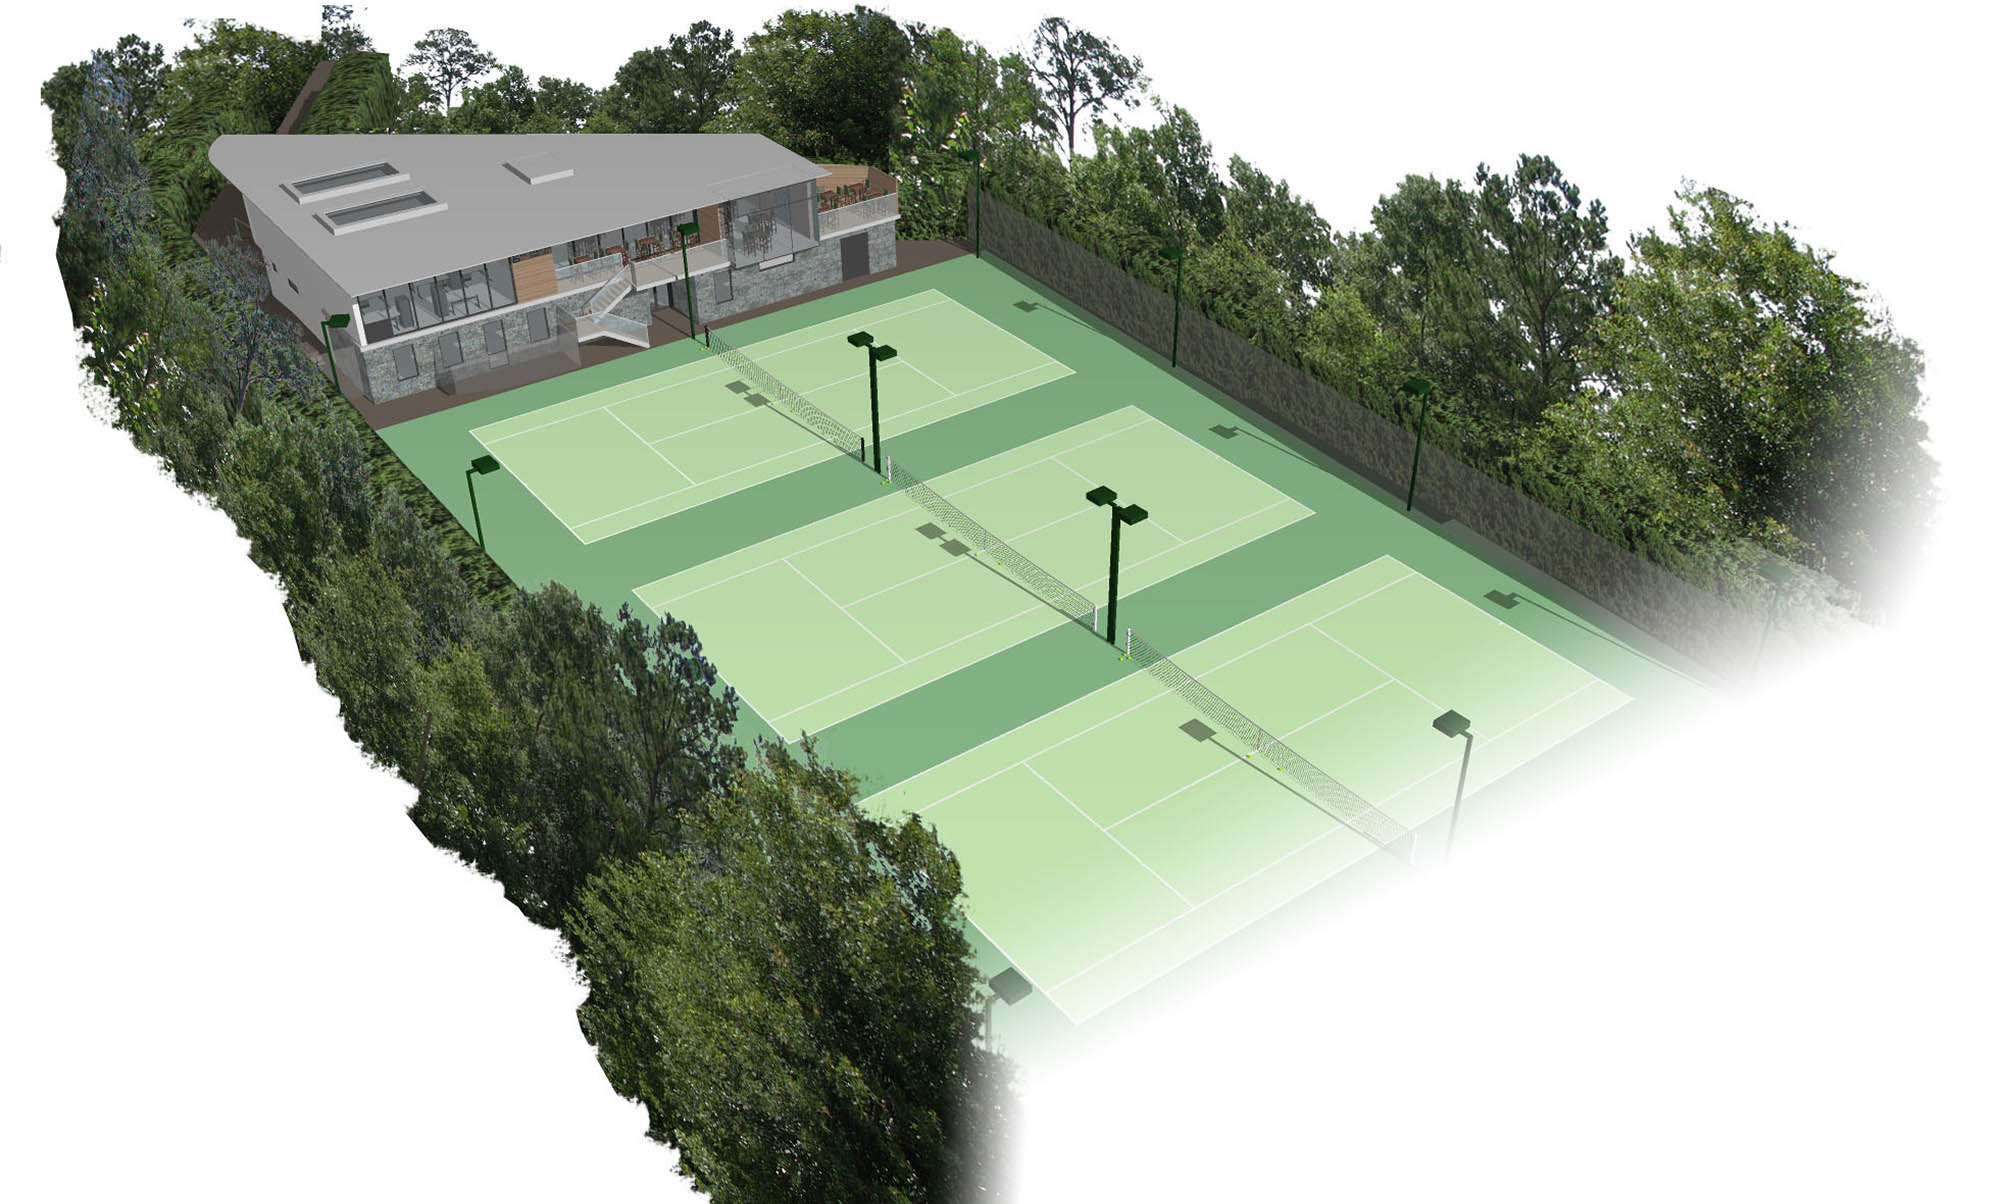 Aerial view of proposed plan for new pavilion and tennis courts for The Gardens Tennis Club